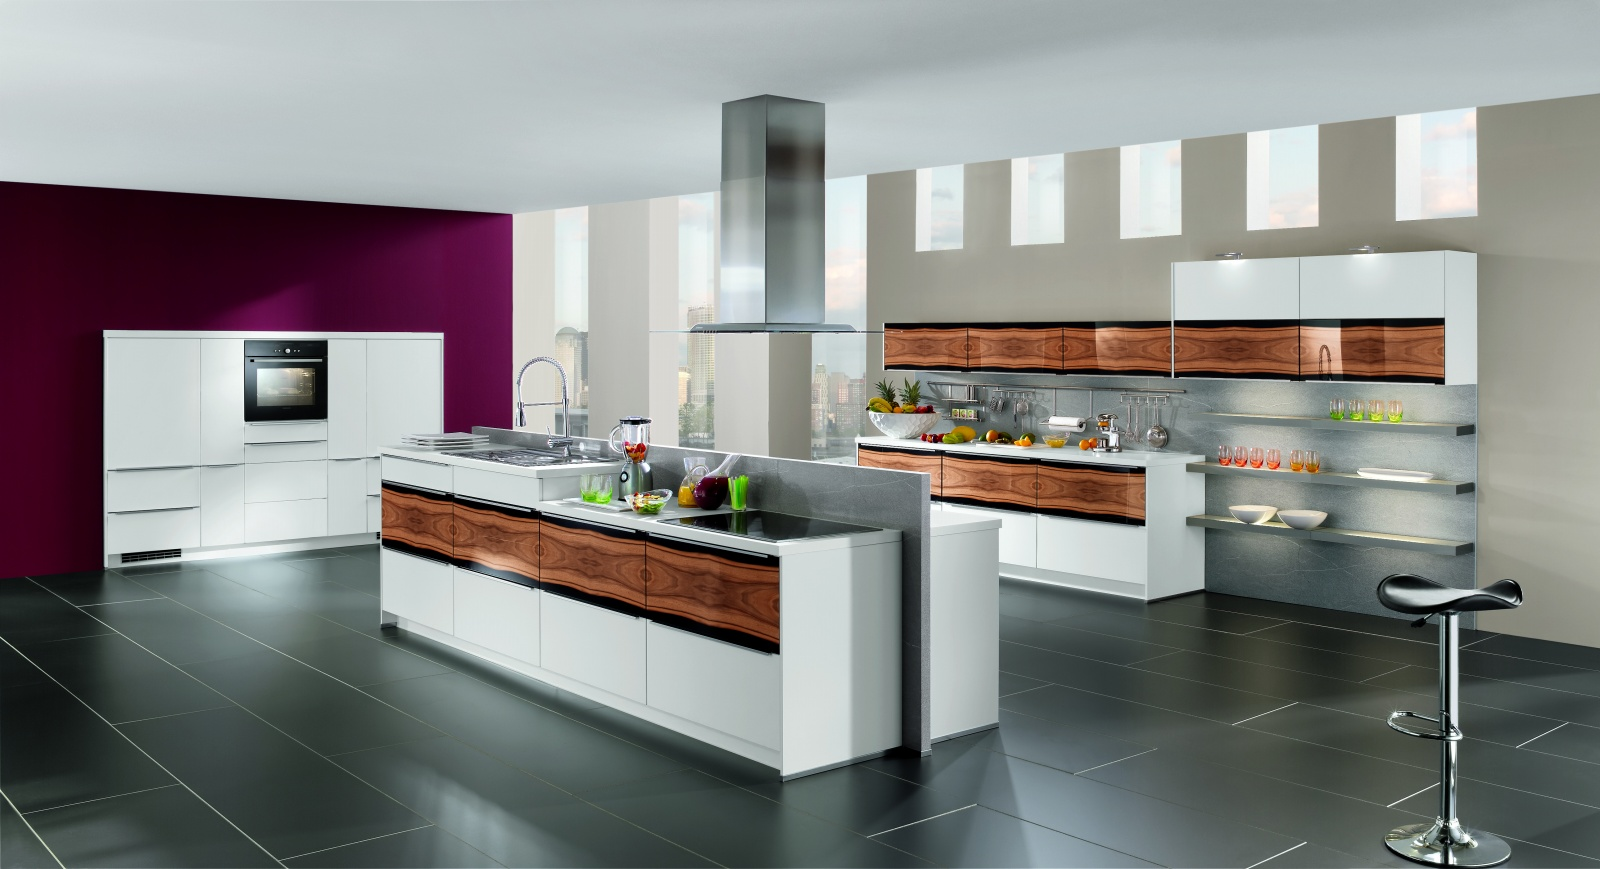 10 light wood beautiful contemporary nobilia kitchen designs Kitchen designs pictures free